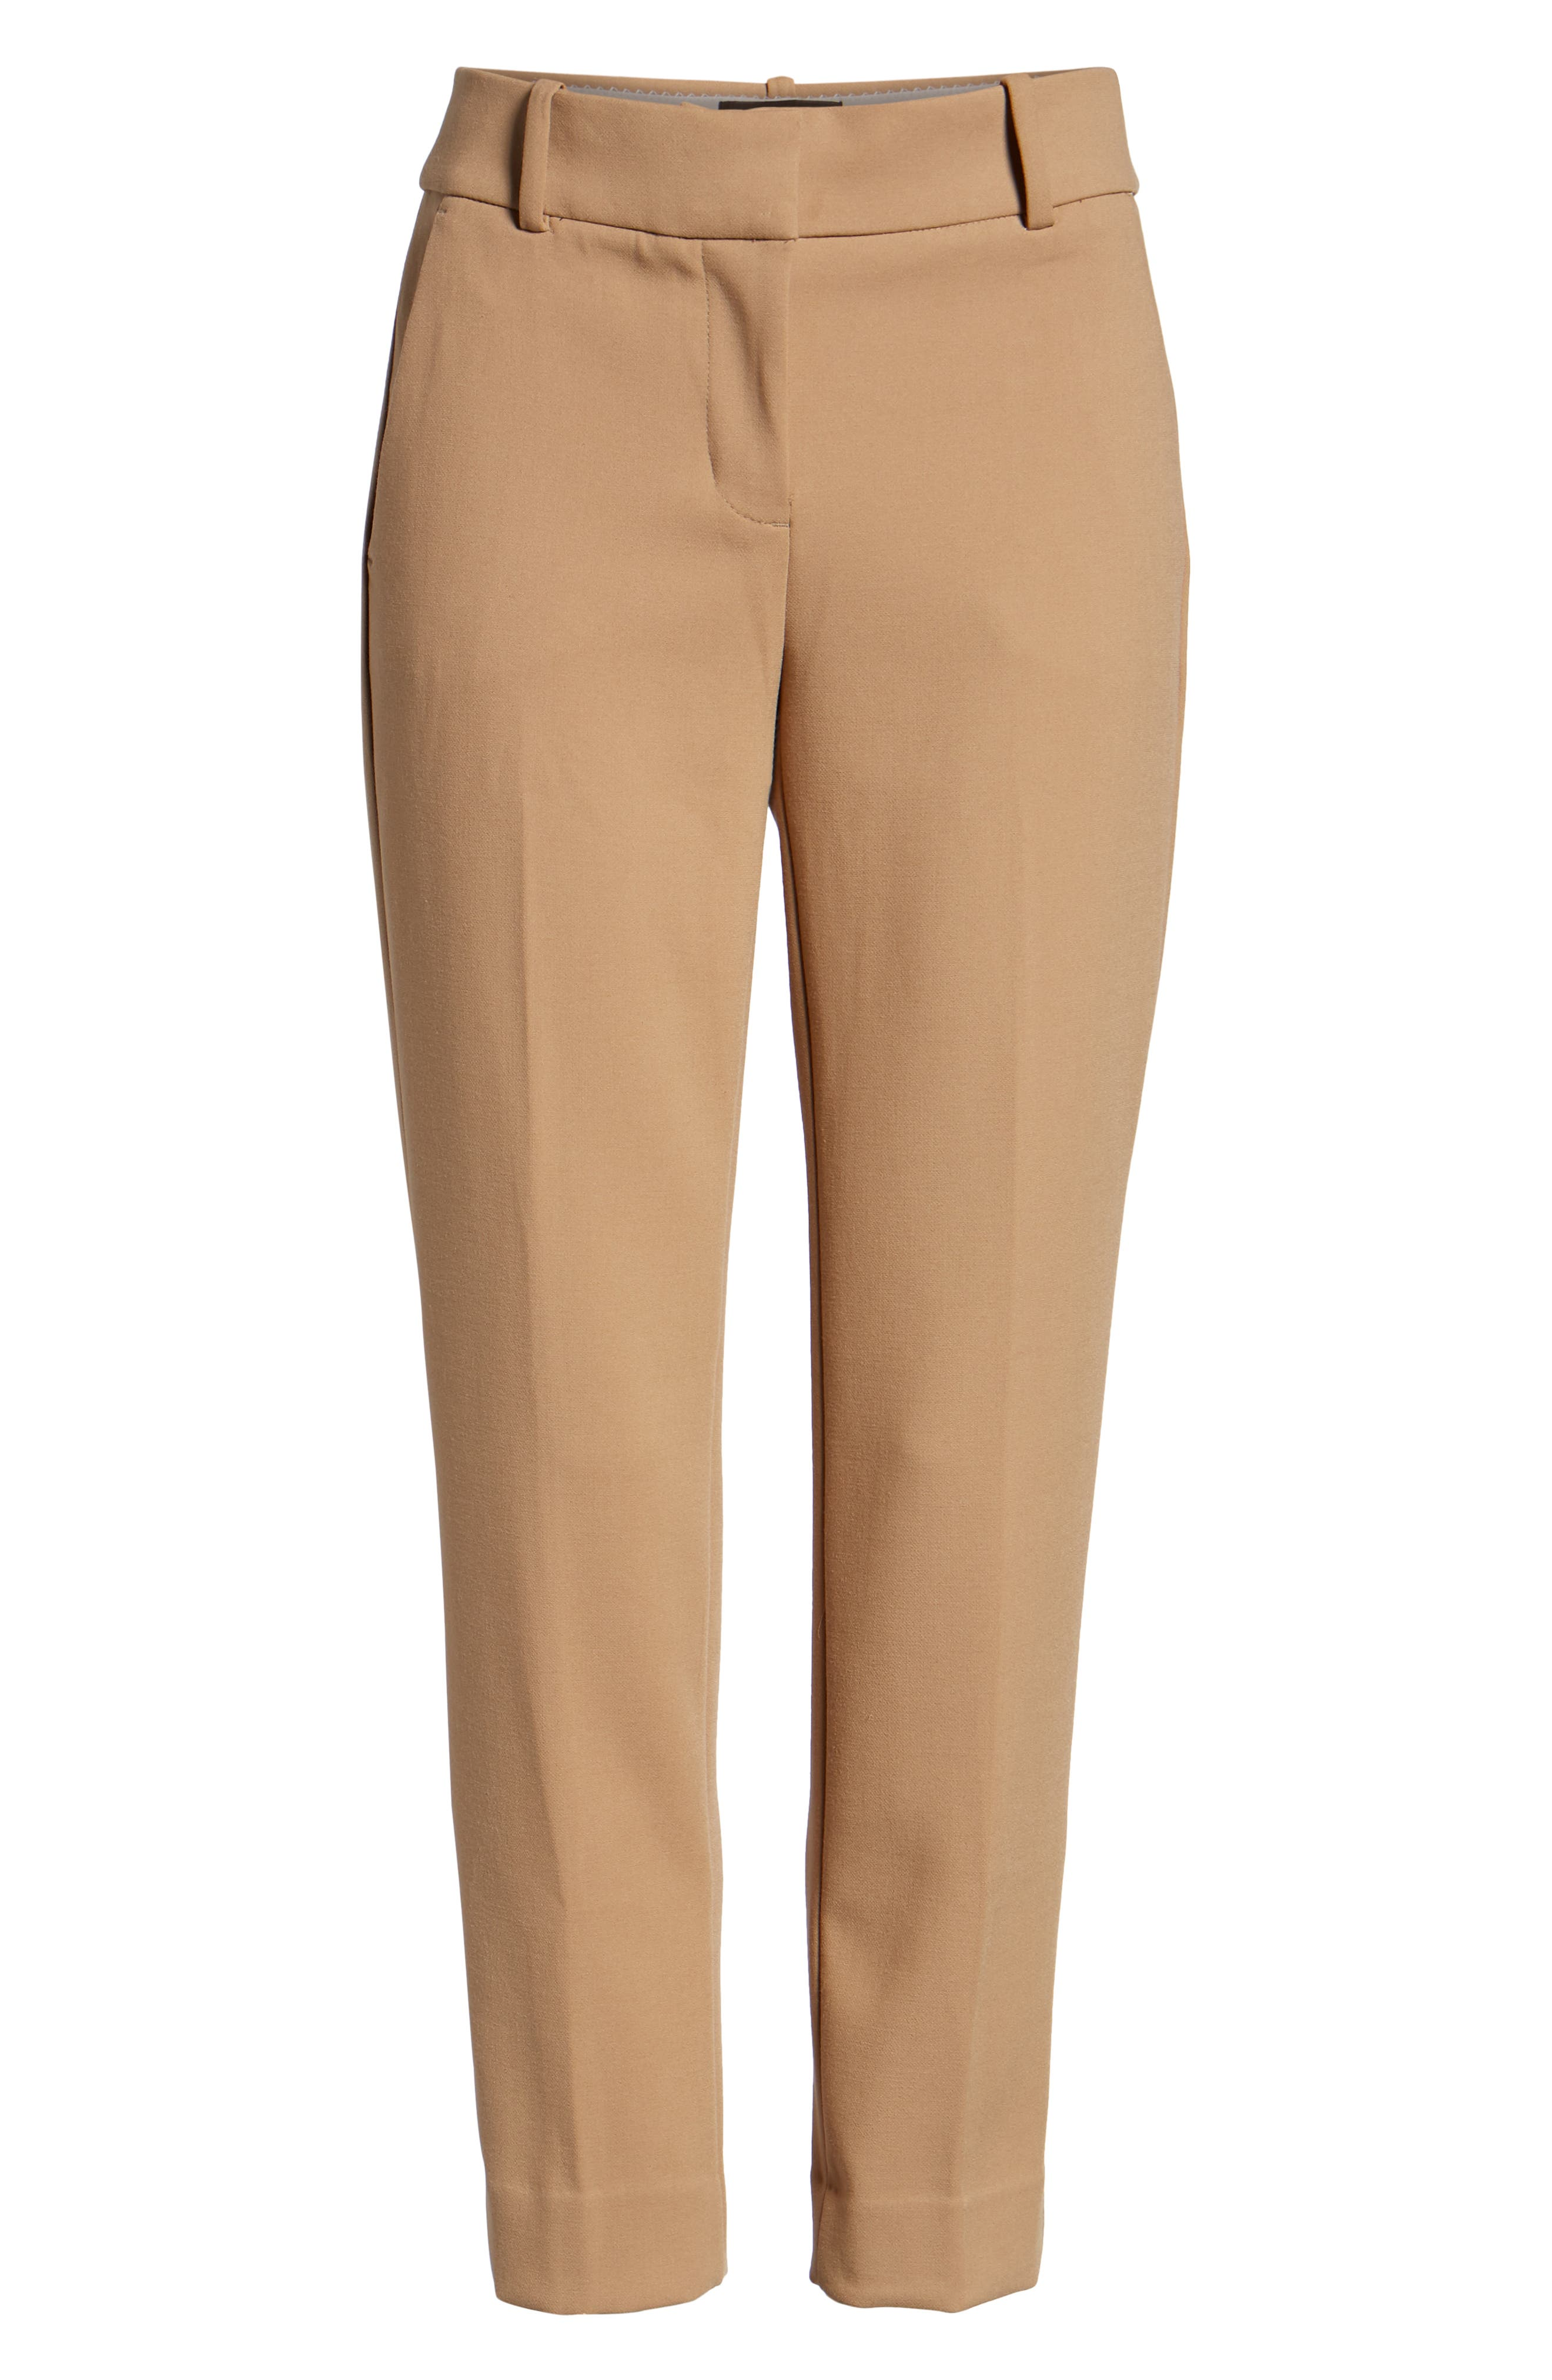 Cameron Four Season Crop Pants,                             Alternate thumbnail 6, color,                             HEATHER SADDLE